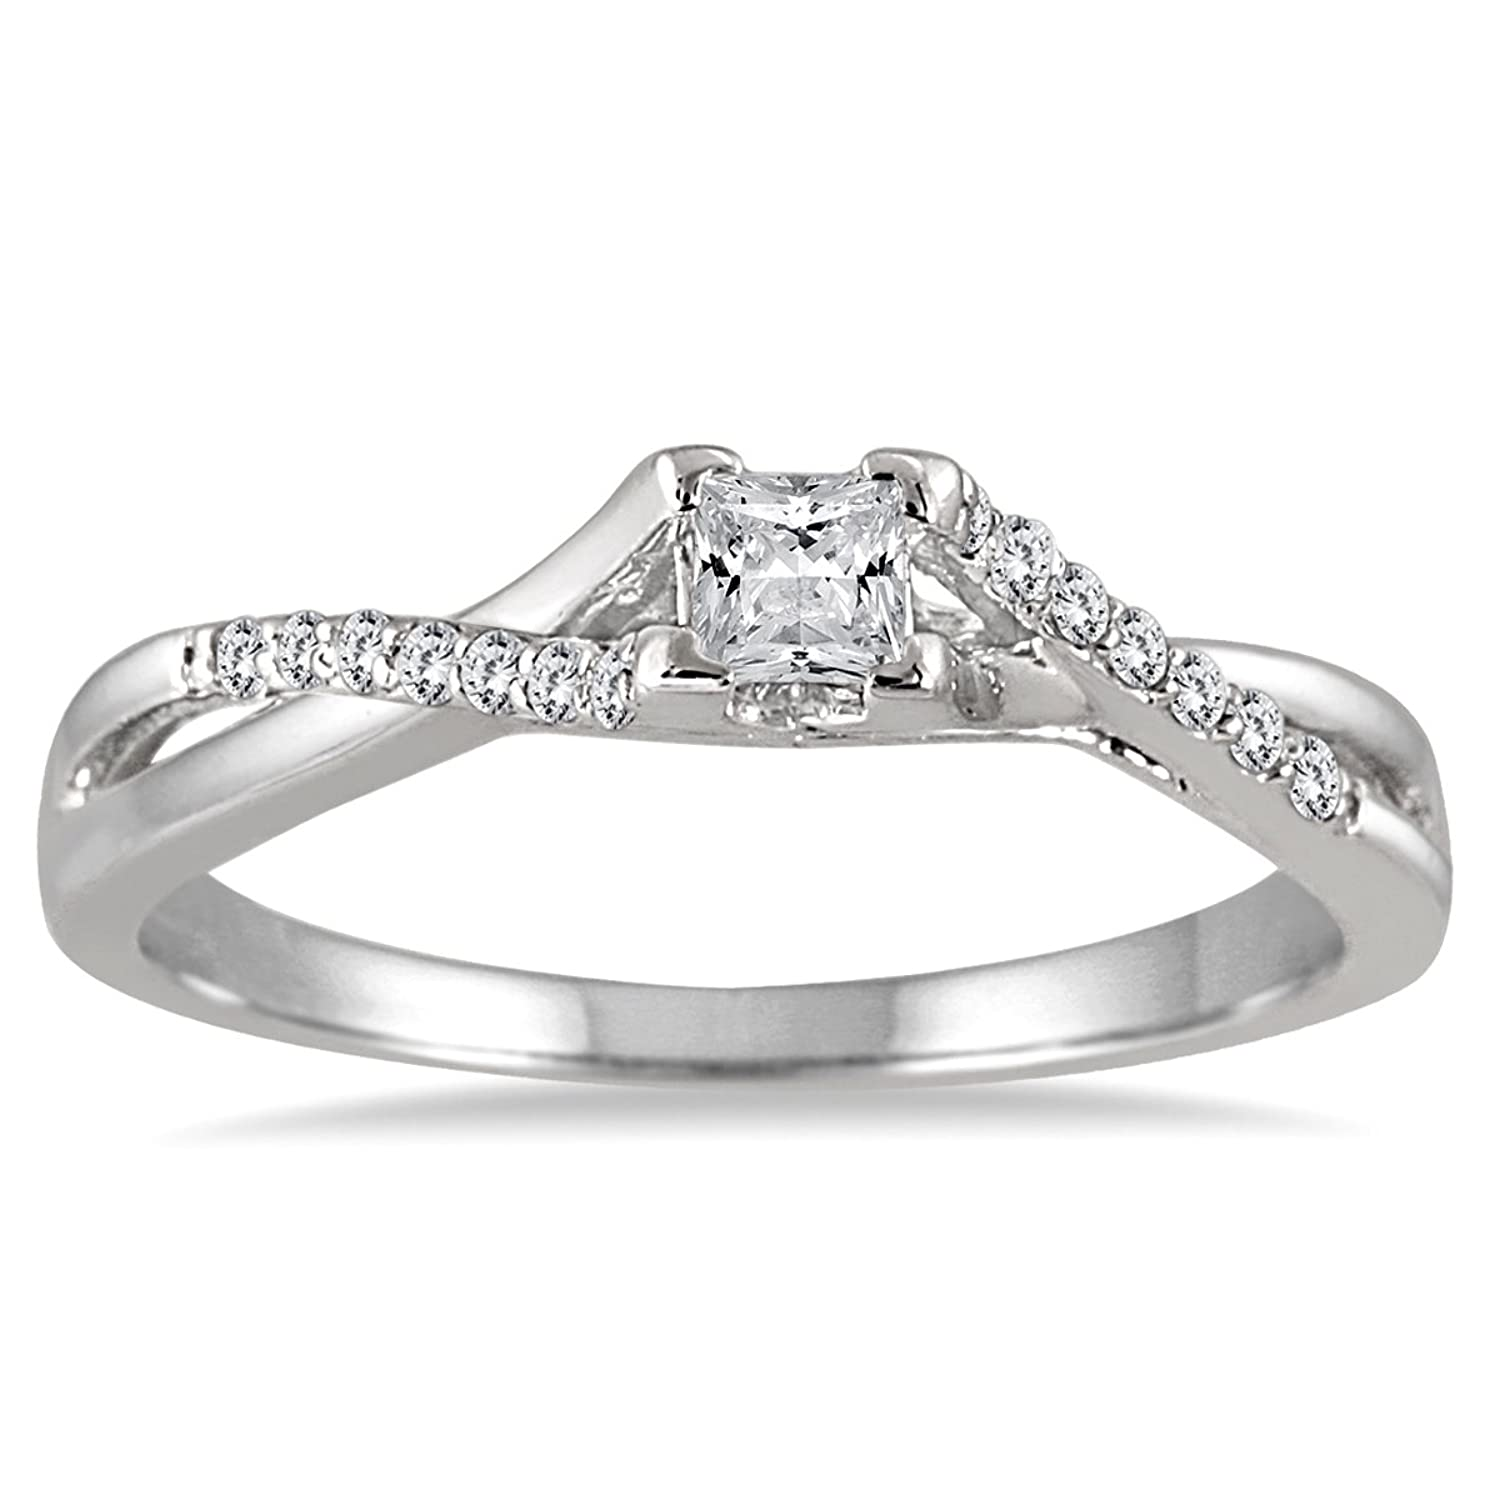 AGS Certified 1 3 Carat TW Princess Cut Diamond Engagement Ring in